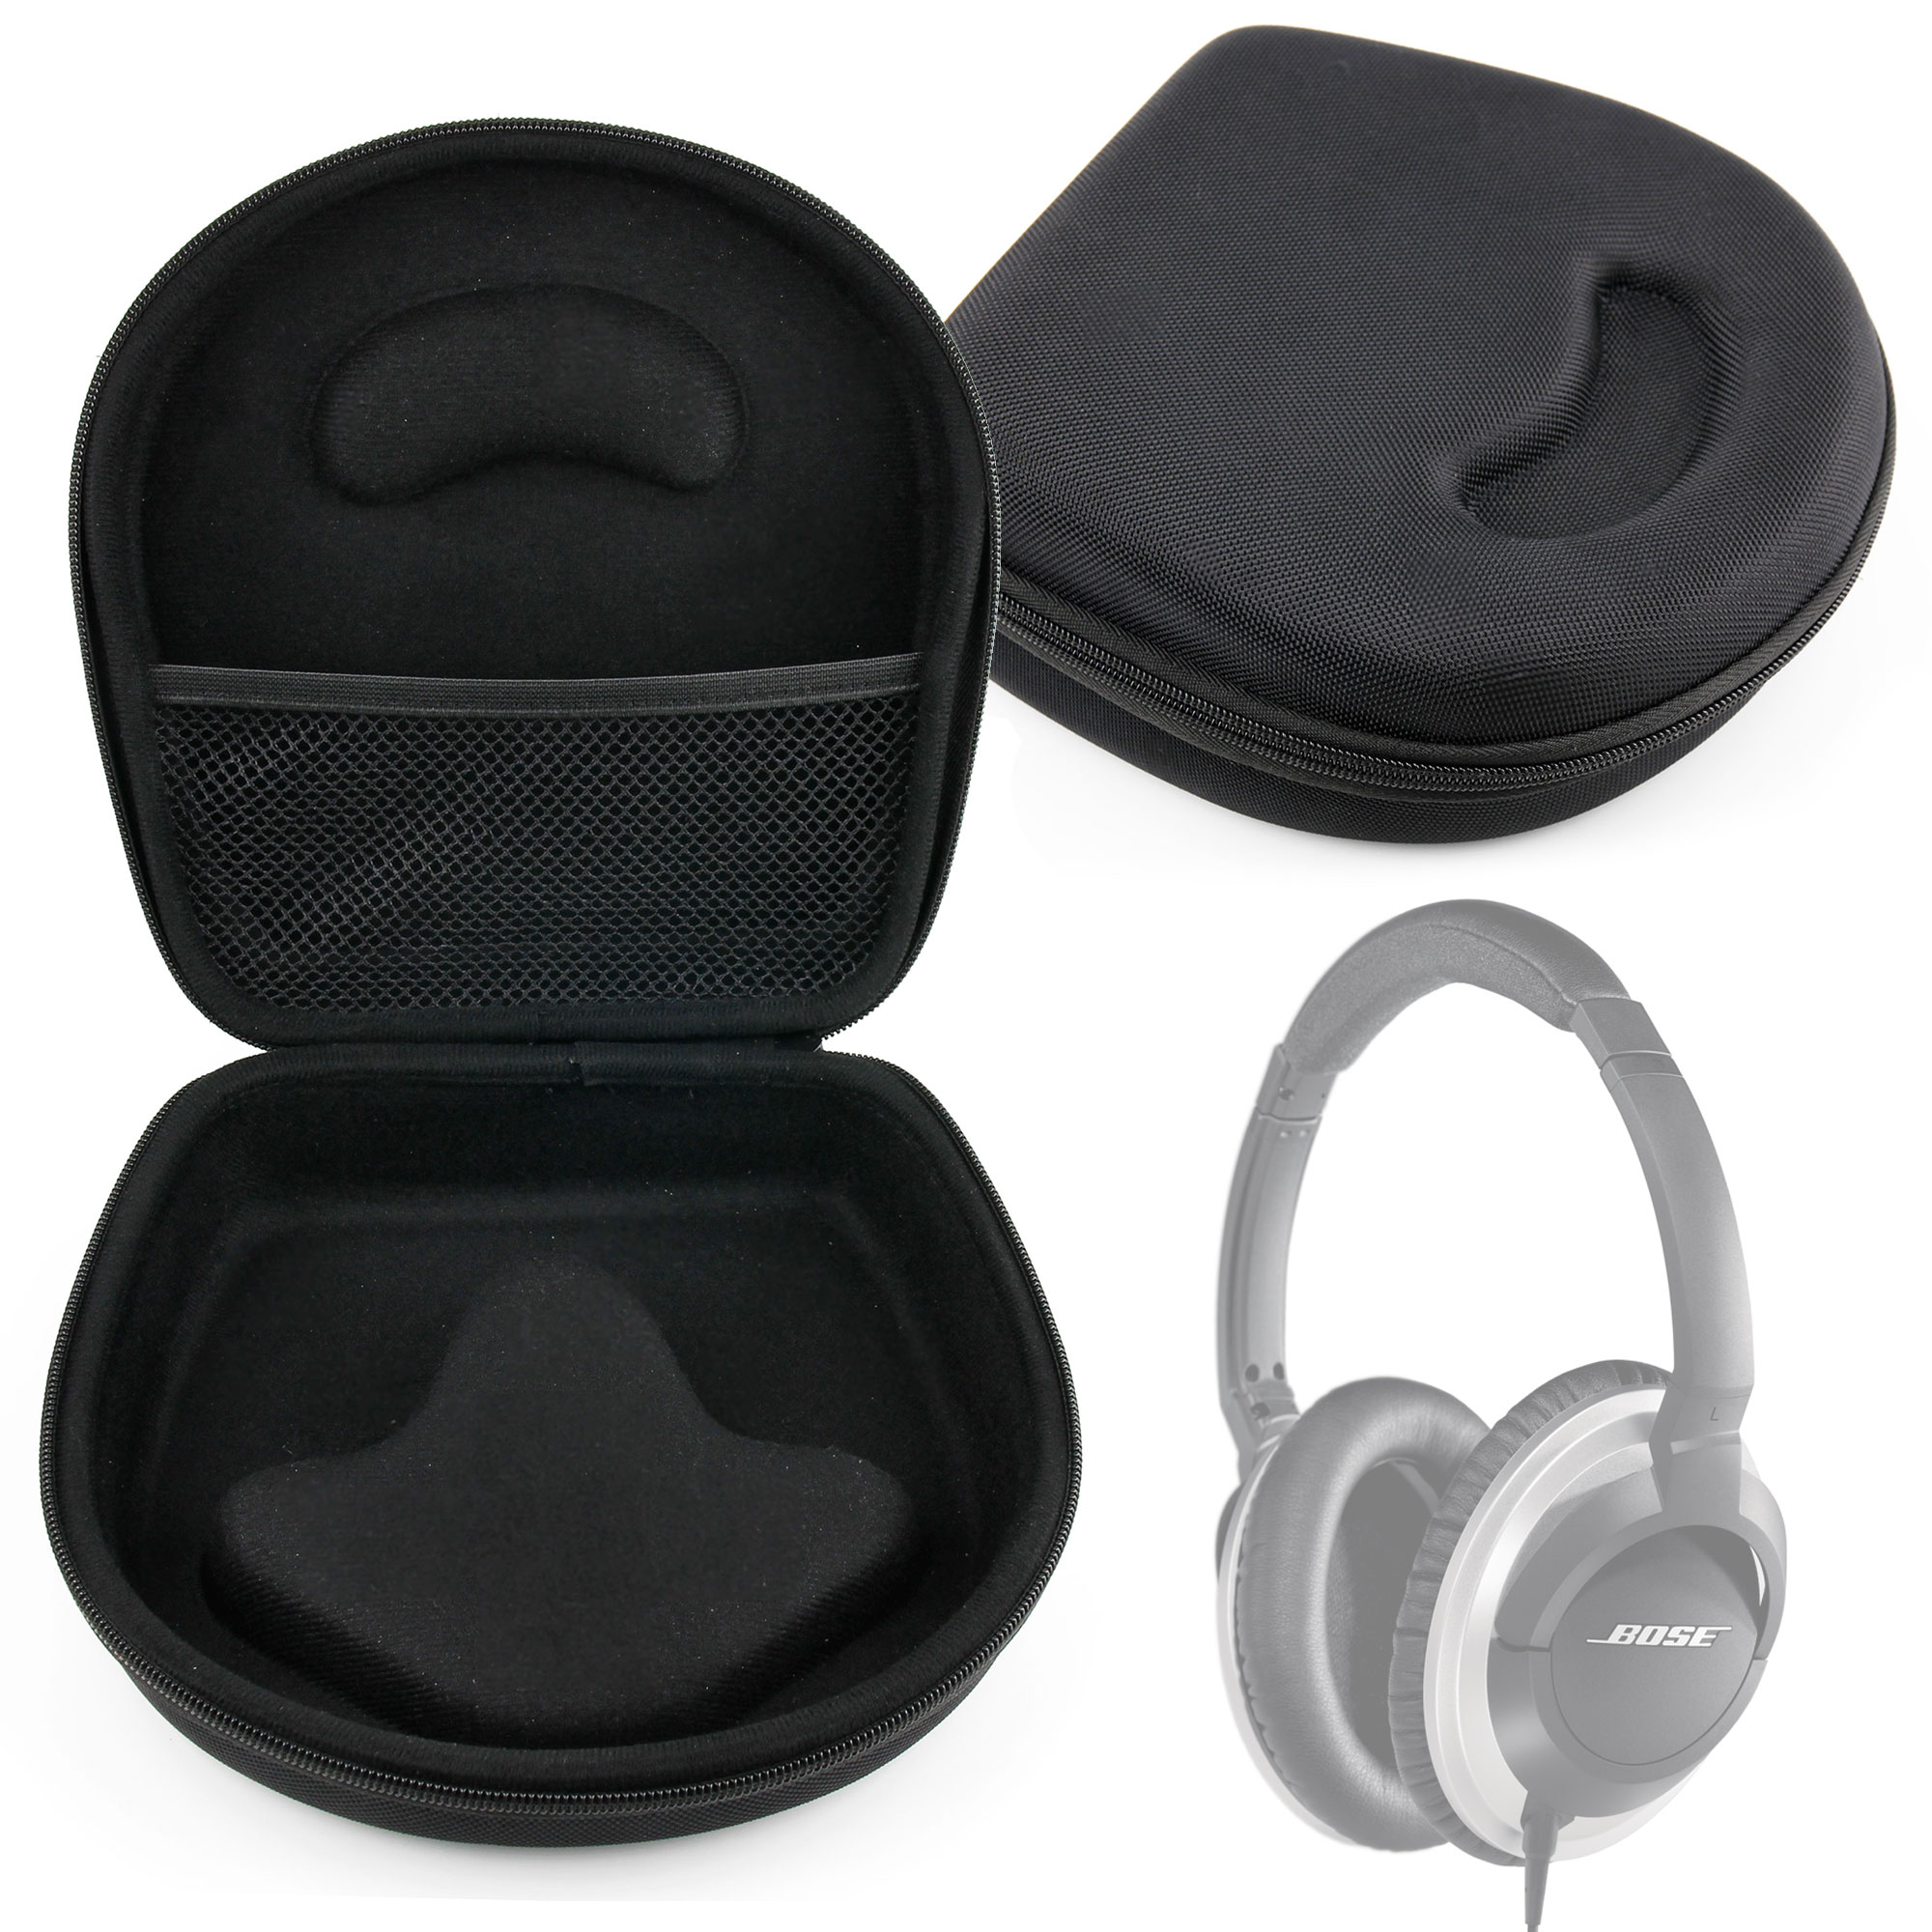 etui de protection pour casque audio sony beats jbl coque noire moul e ebay. Black Bedroom Furniture Sets. Home Design Ideas